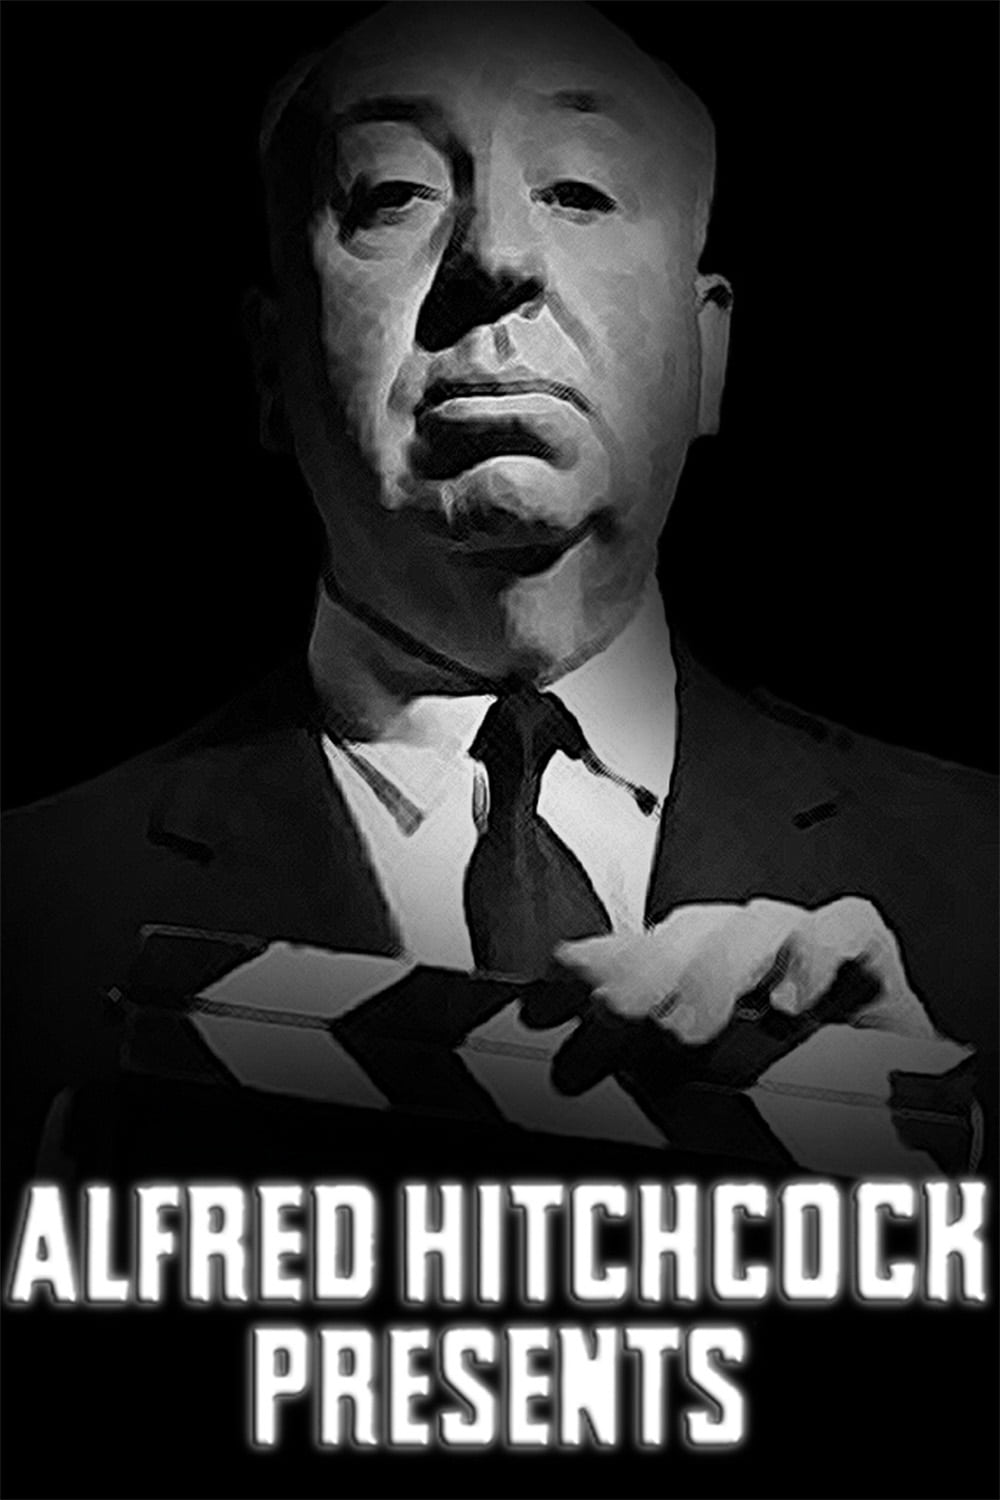 Alfred Hitchcock Presents (1955)